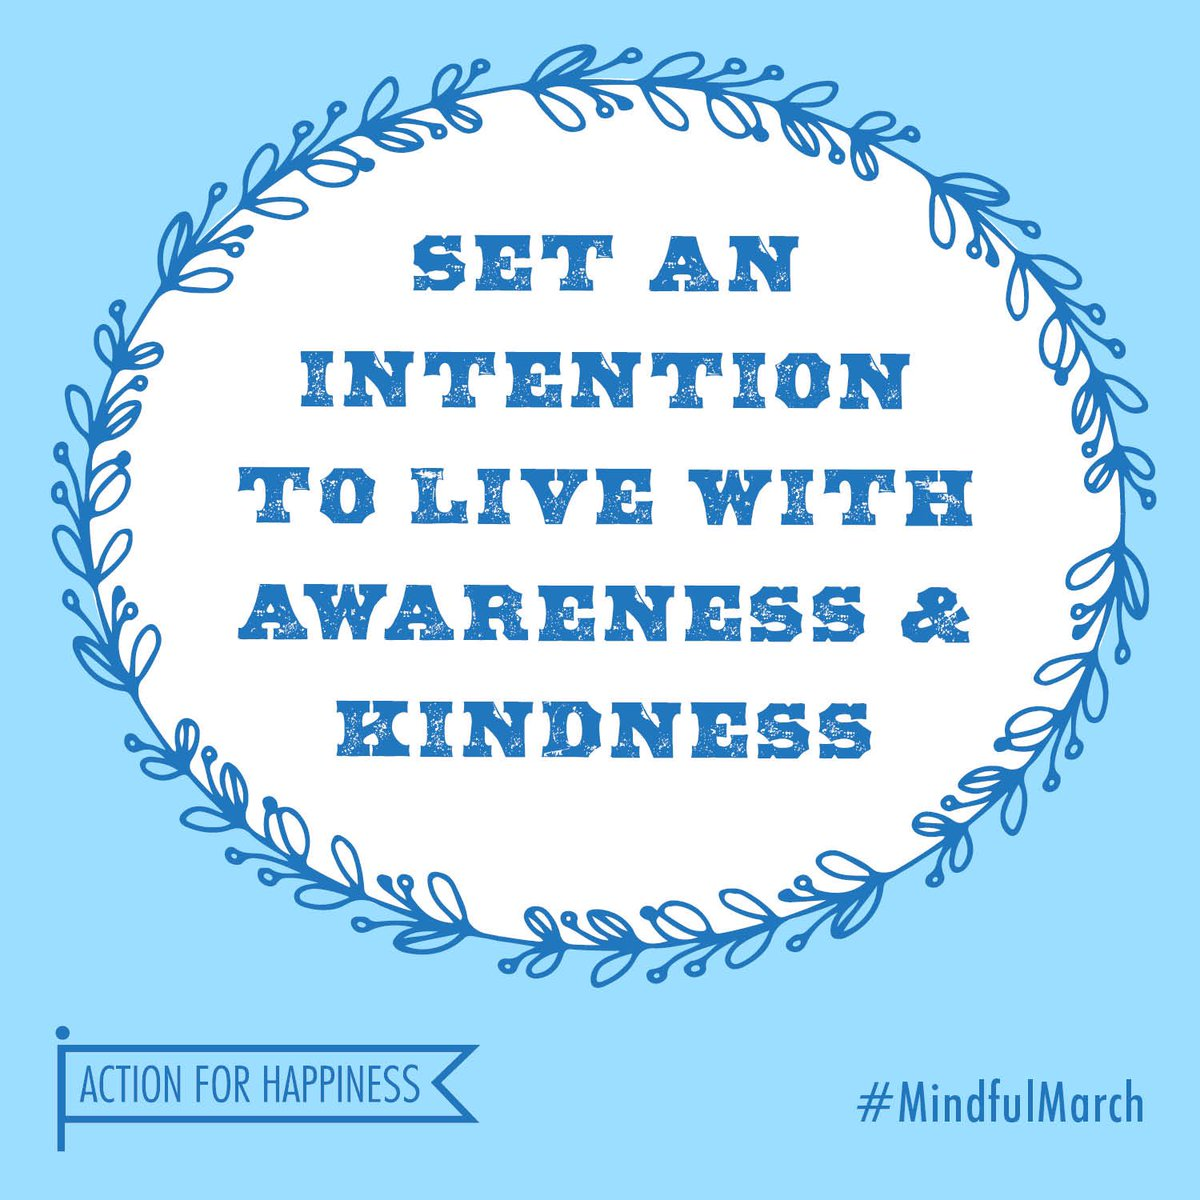 Mindful March - Day 1: Set an intention to live with awareness and kindness actionforhappiness.org/march #MindfulMarch